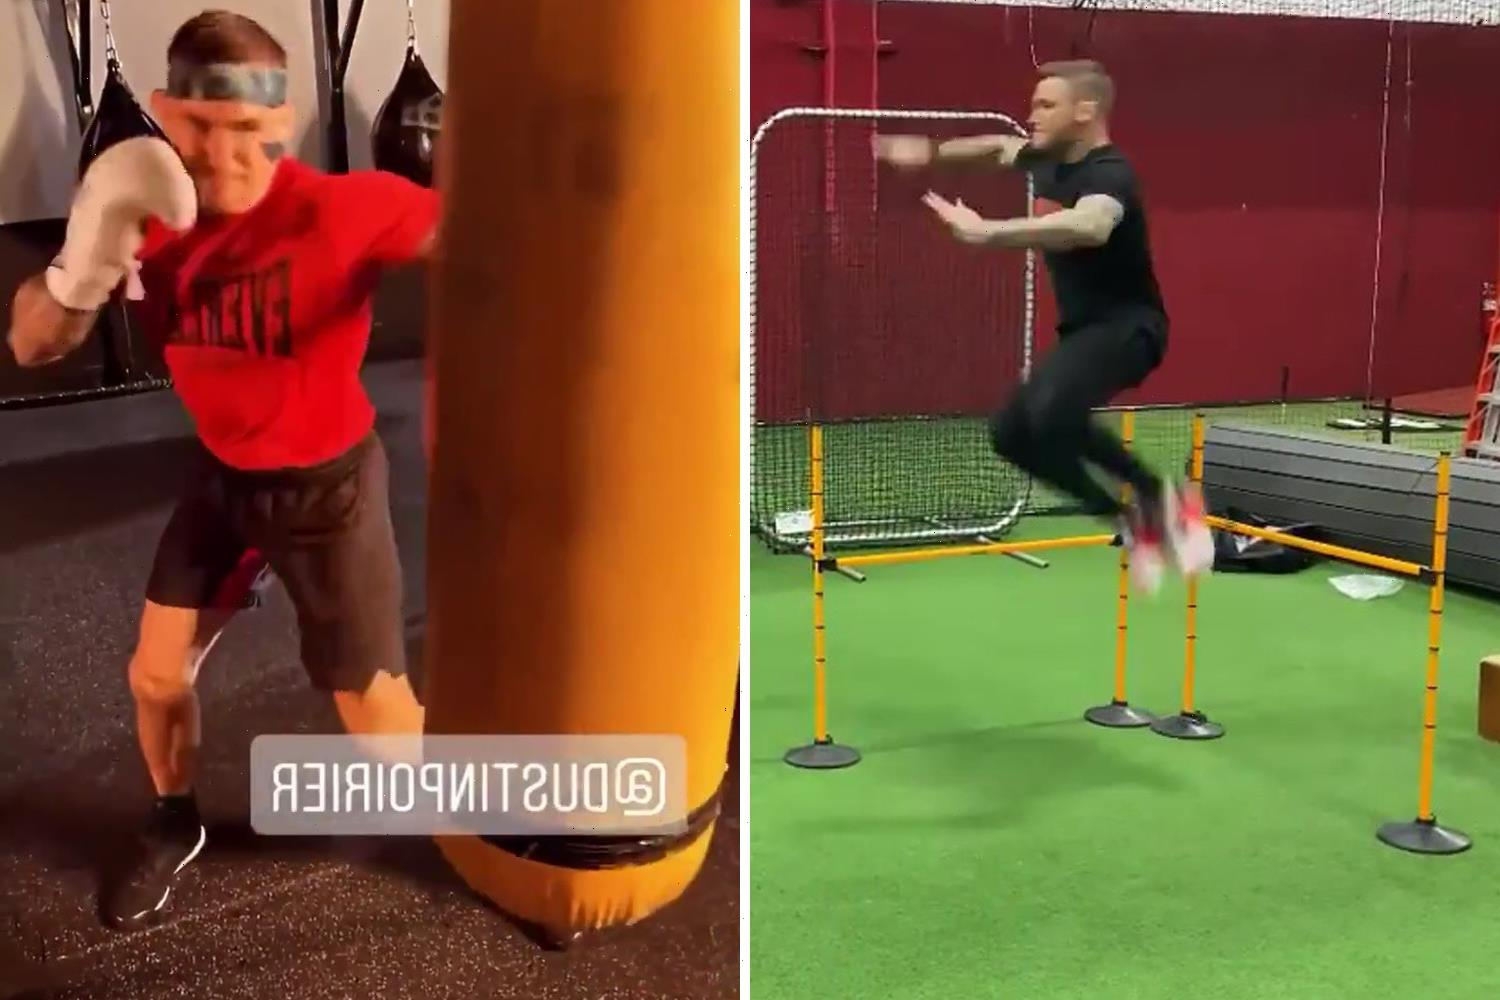 Watch Dustin Poirier's impressive boxing and agility training as UFC star enters last stage of Conor McGregor fight camp